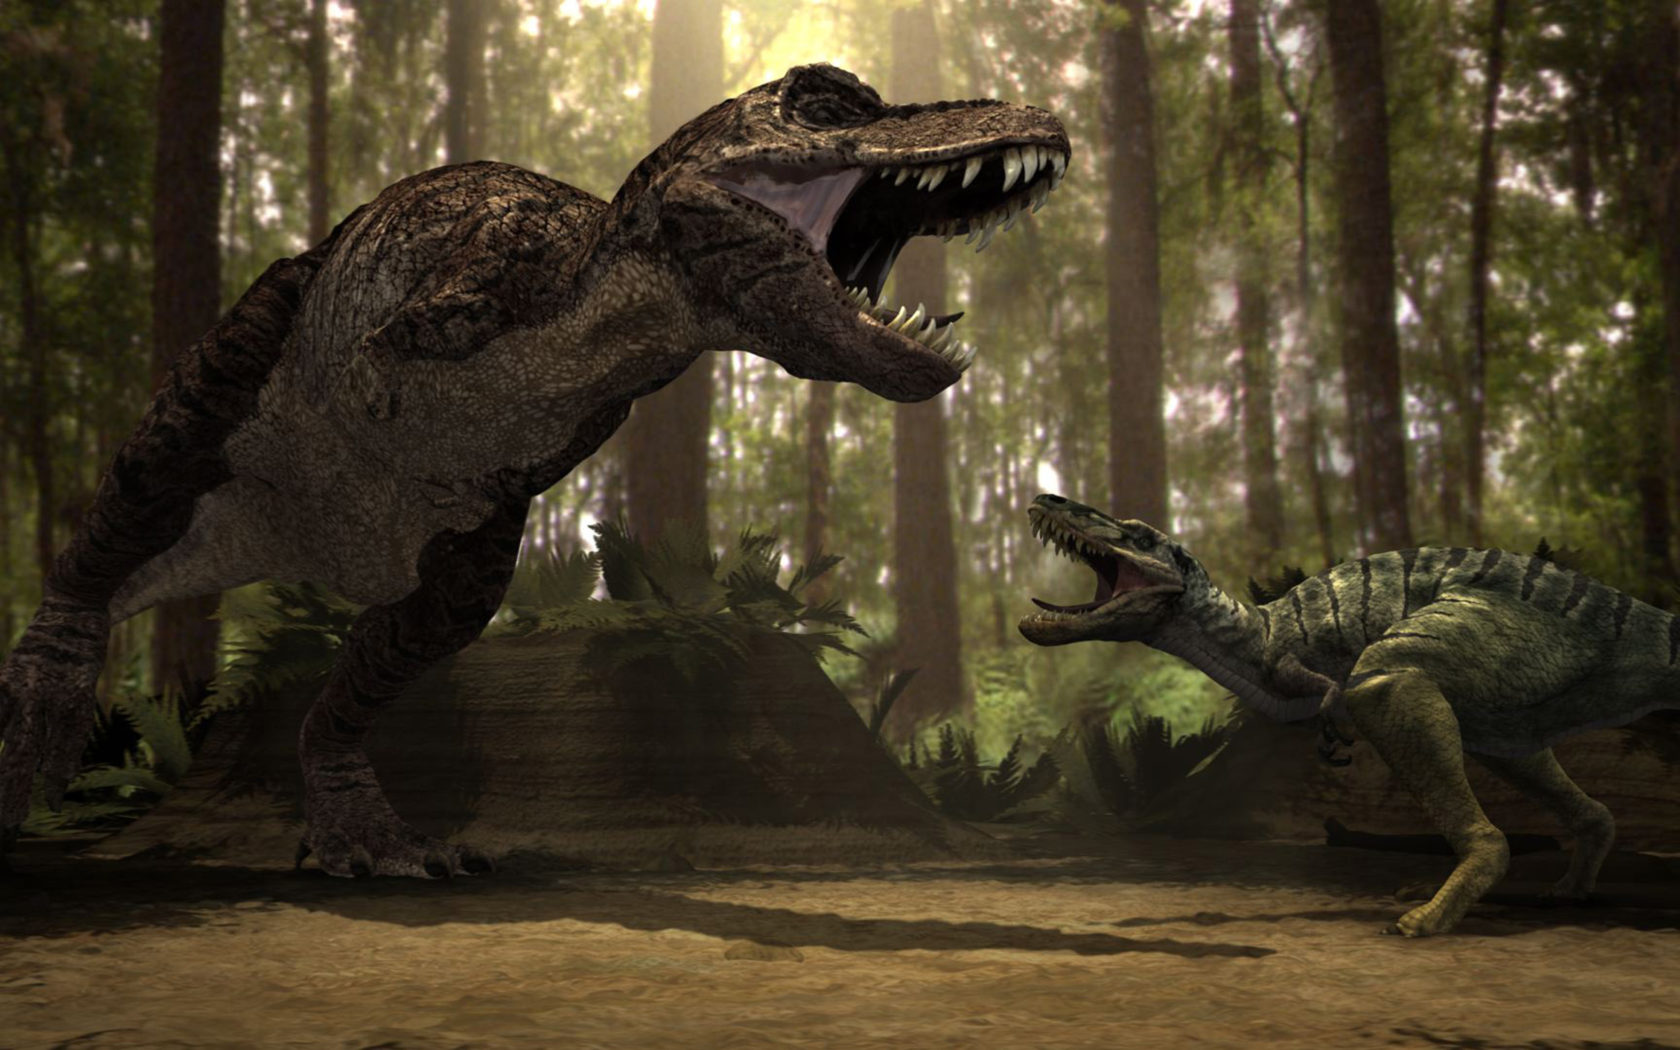 Dinosaur 3d Live Wallpaper Dinosaurs Wallpapers Hd 0976 Wallpapers13 Com